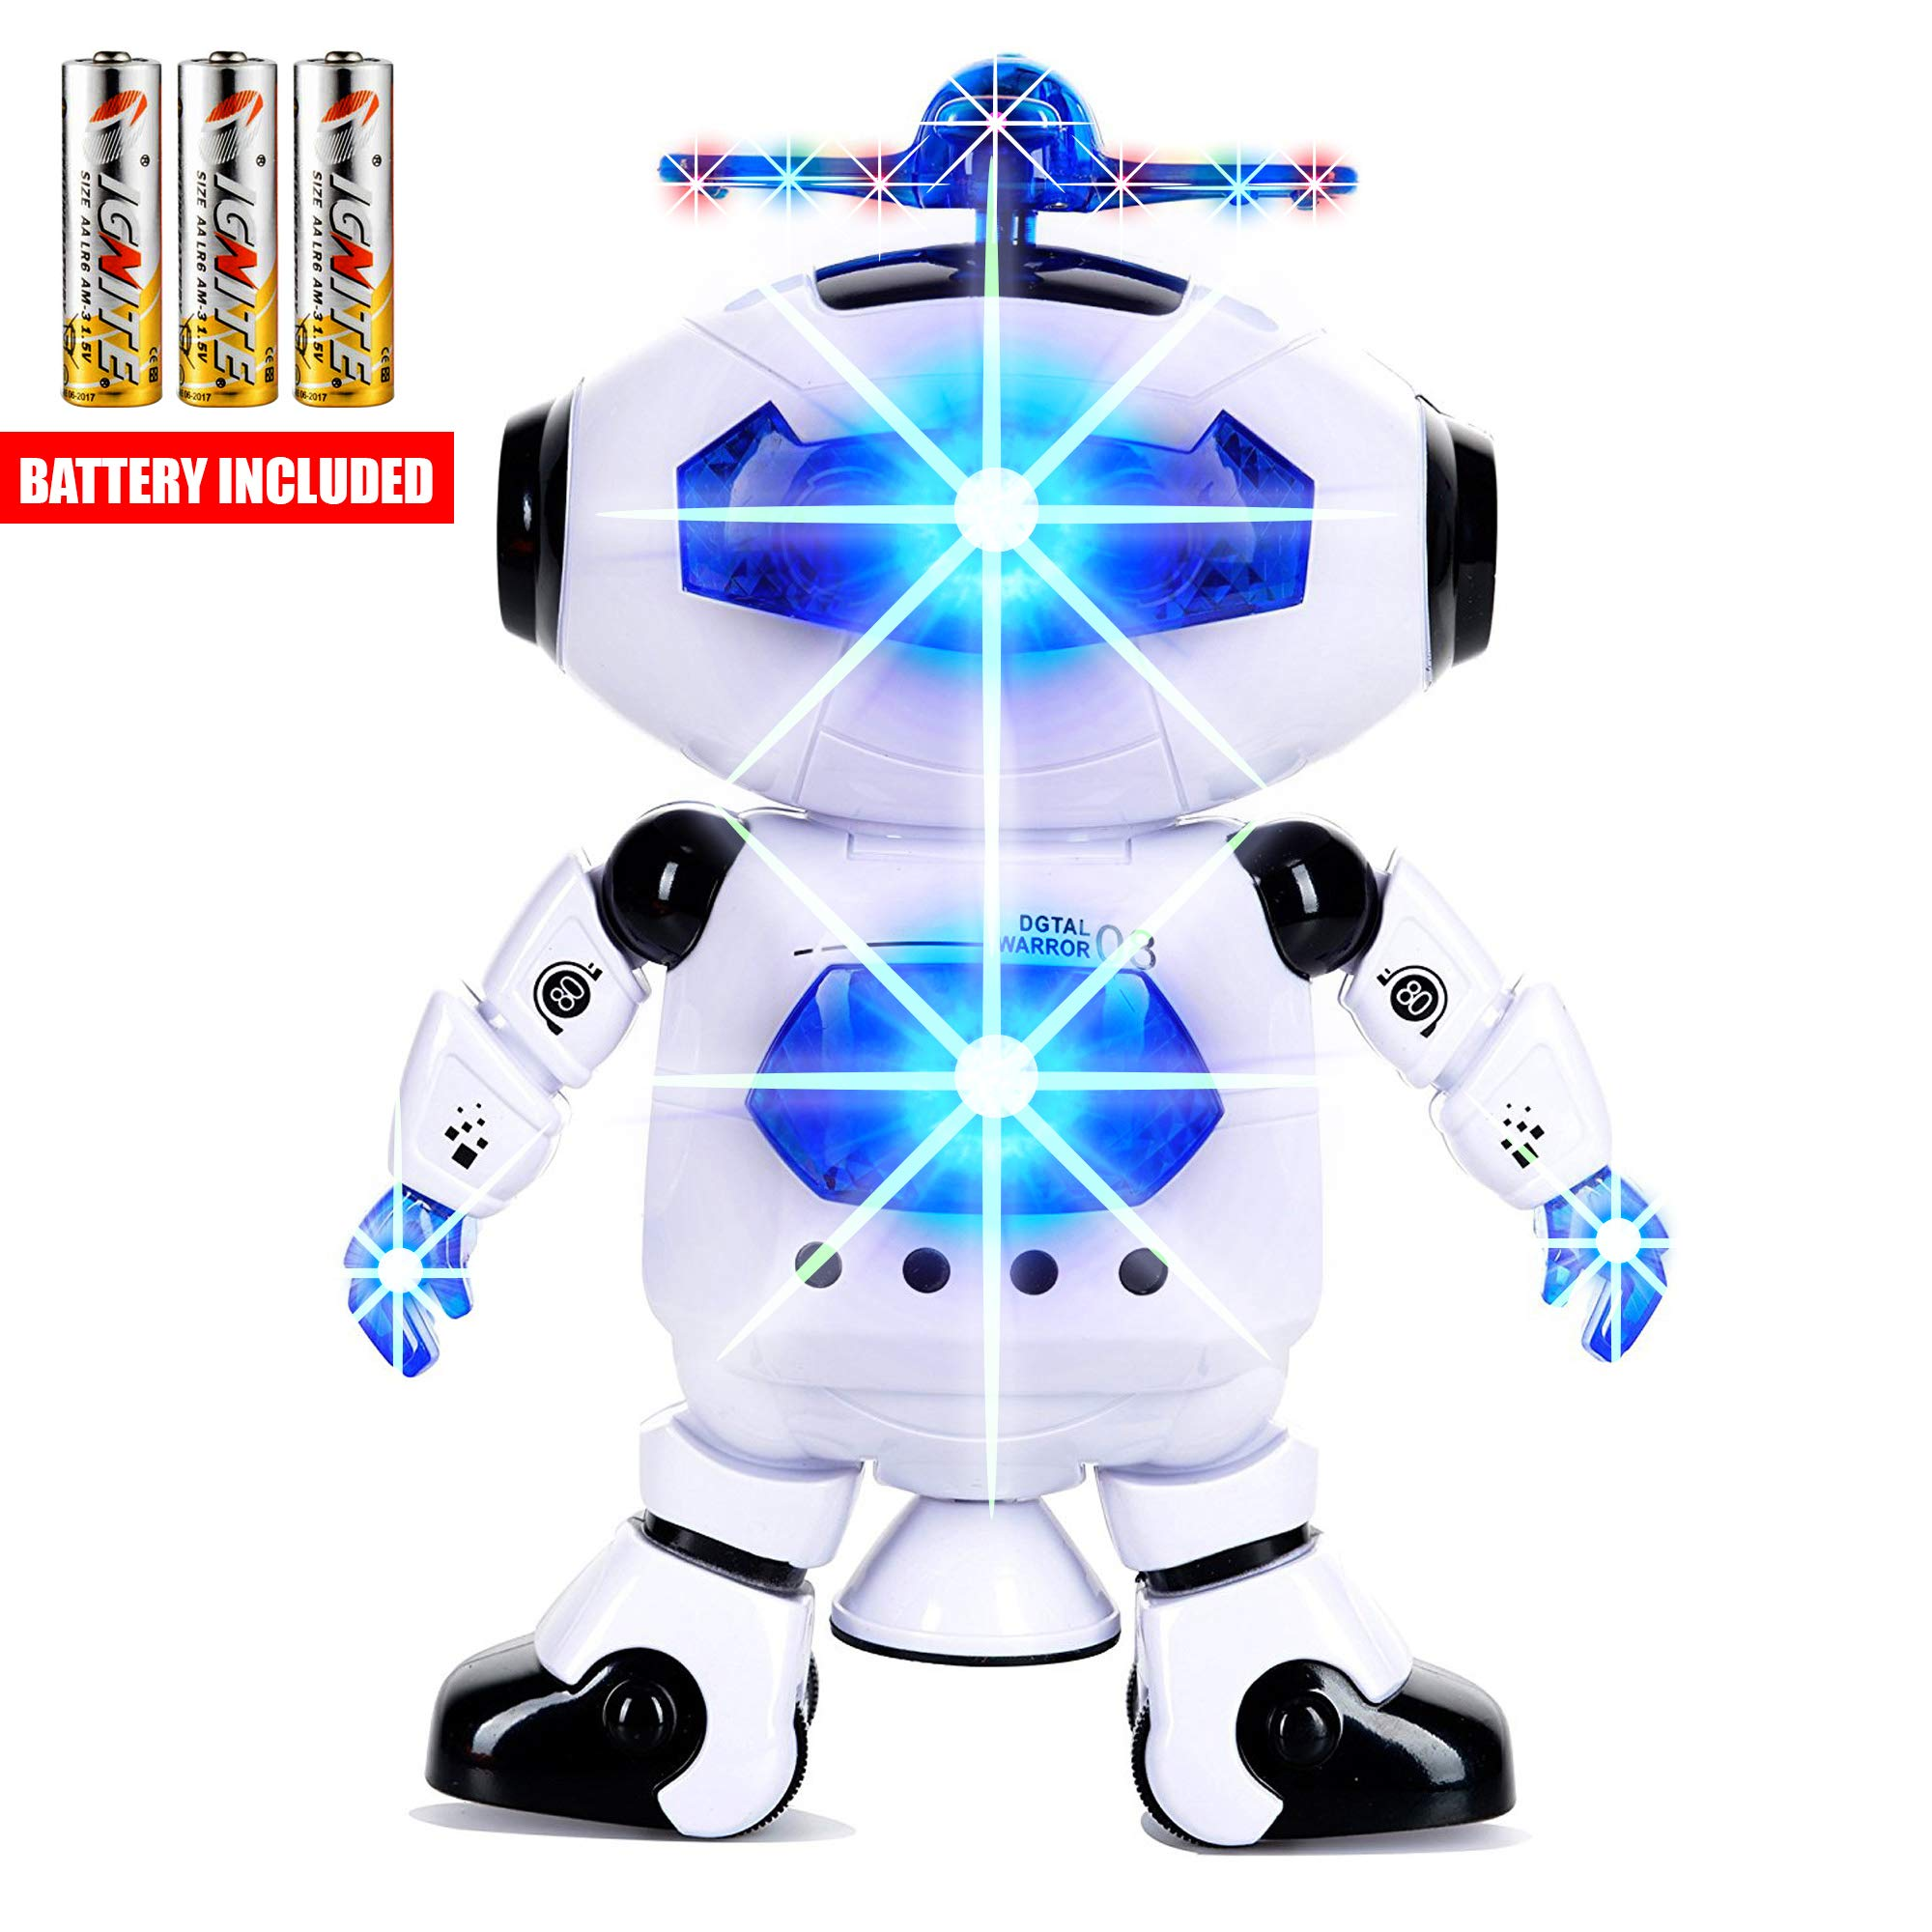 Toysery Electronic Walking Dancing Robot Toys With Music Lightening For Kids Boys Girls Toddlers, Battery Operated Included by  Toysery (Image #1)